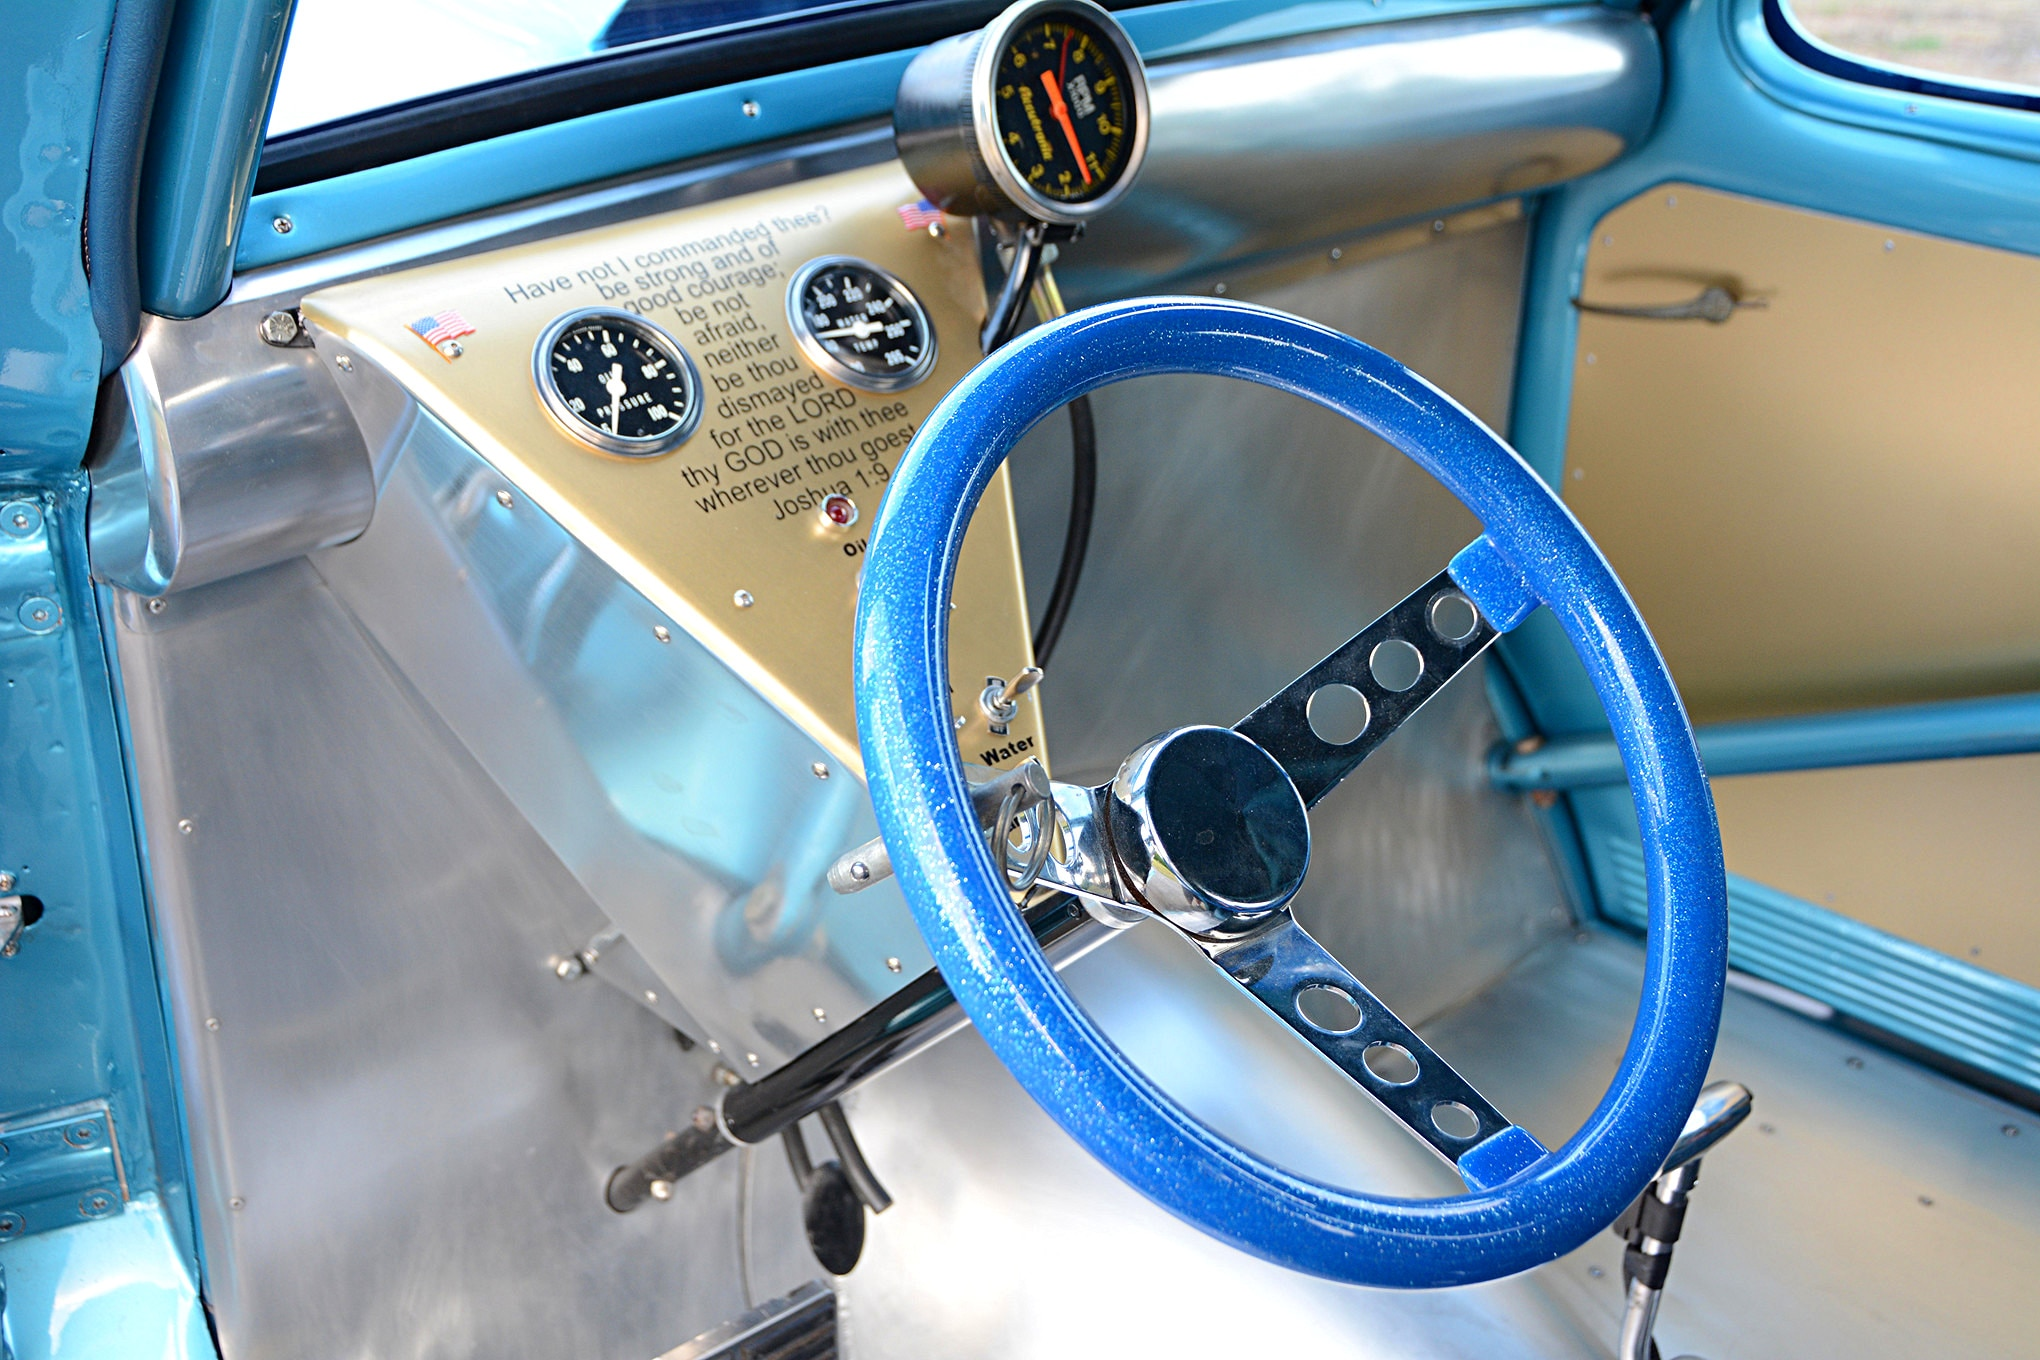 A blue metalflake steering wheel is the centerpiece in this basic race car interior, as it stands out in a sea of bare aluminum. The custom dash panel holds a couple gauges, a mount for the cable-drive Accutronic tachometer and a special Bible verse that Gene holds dear.